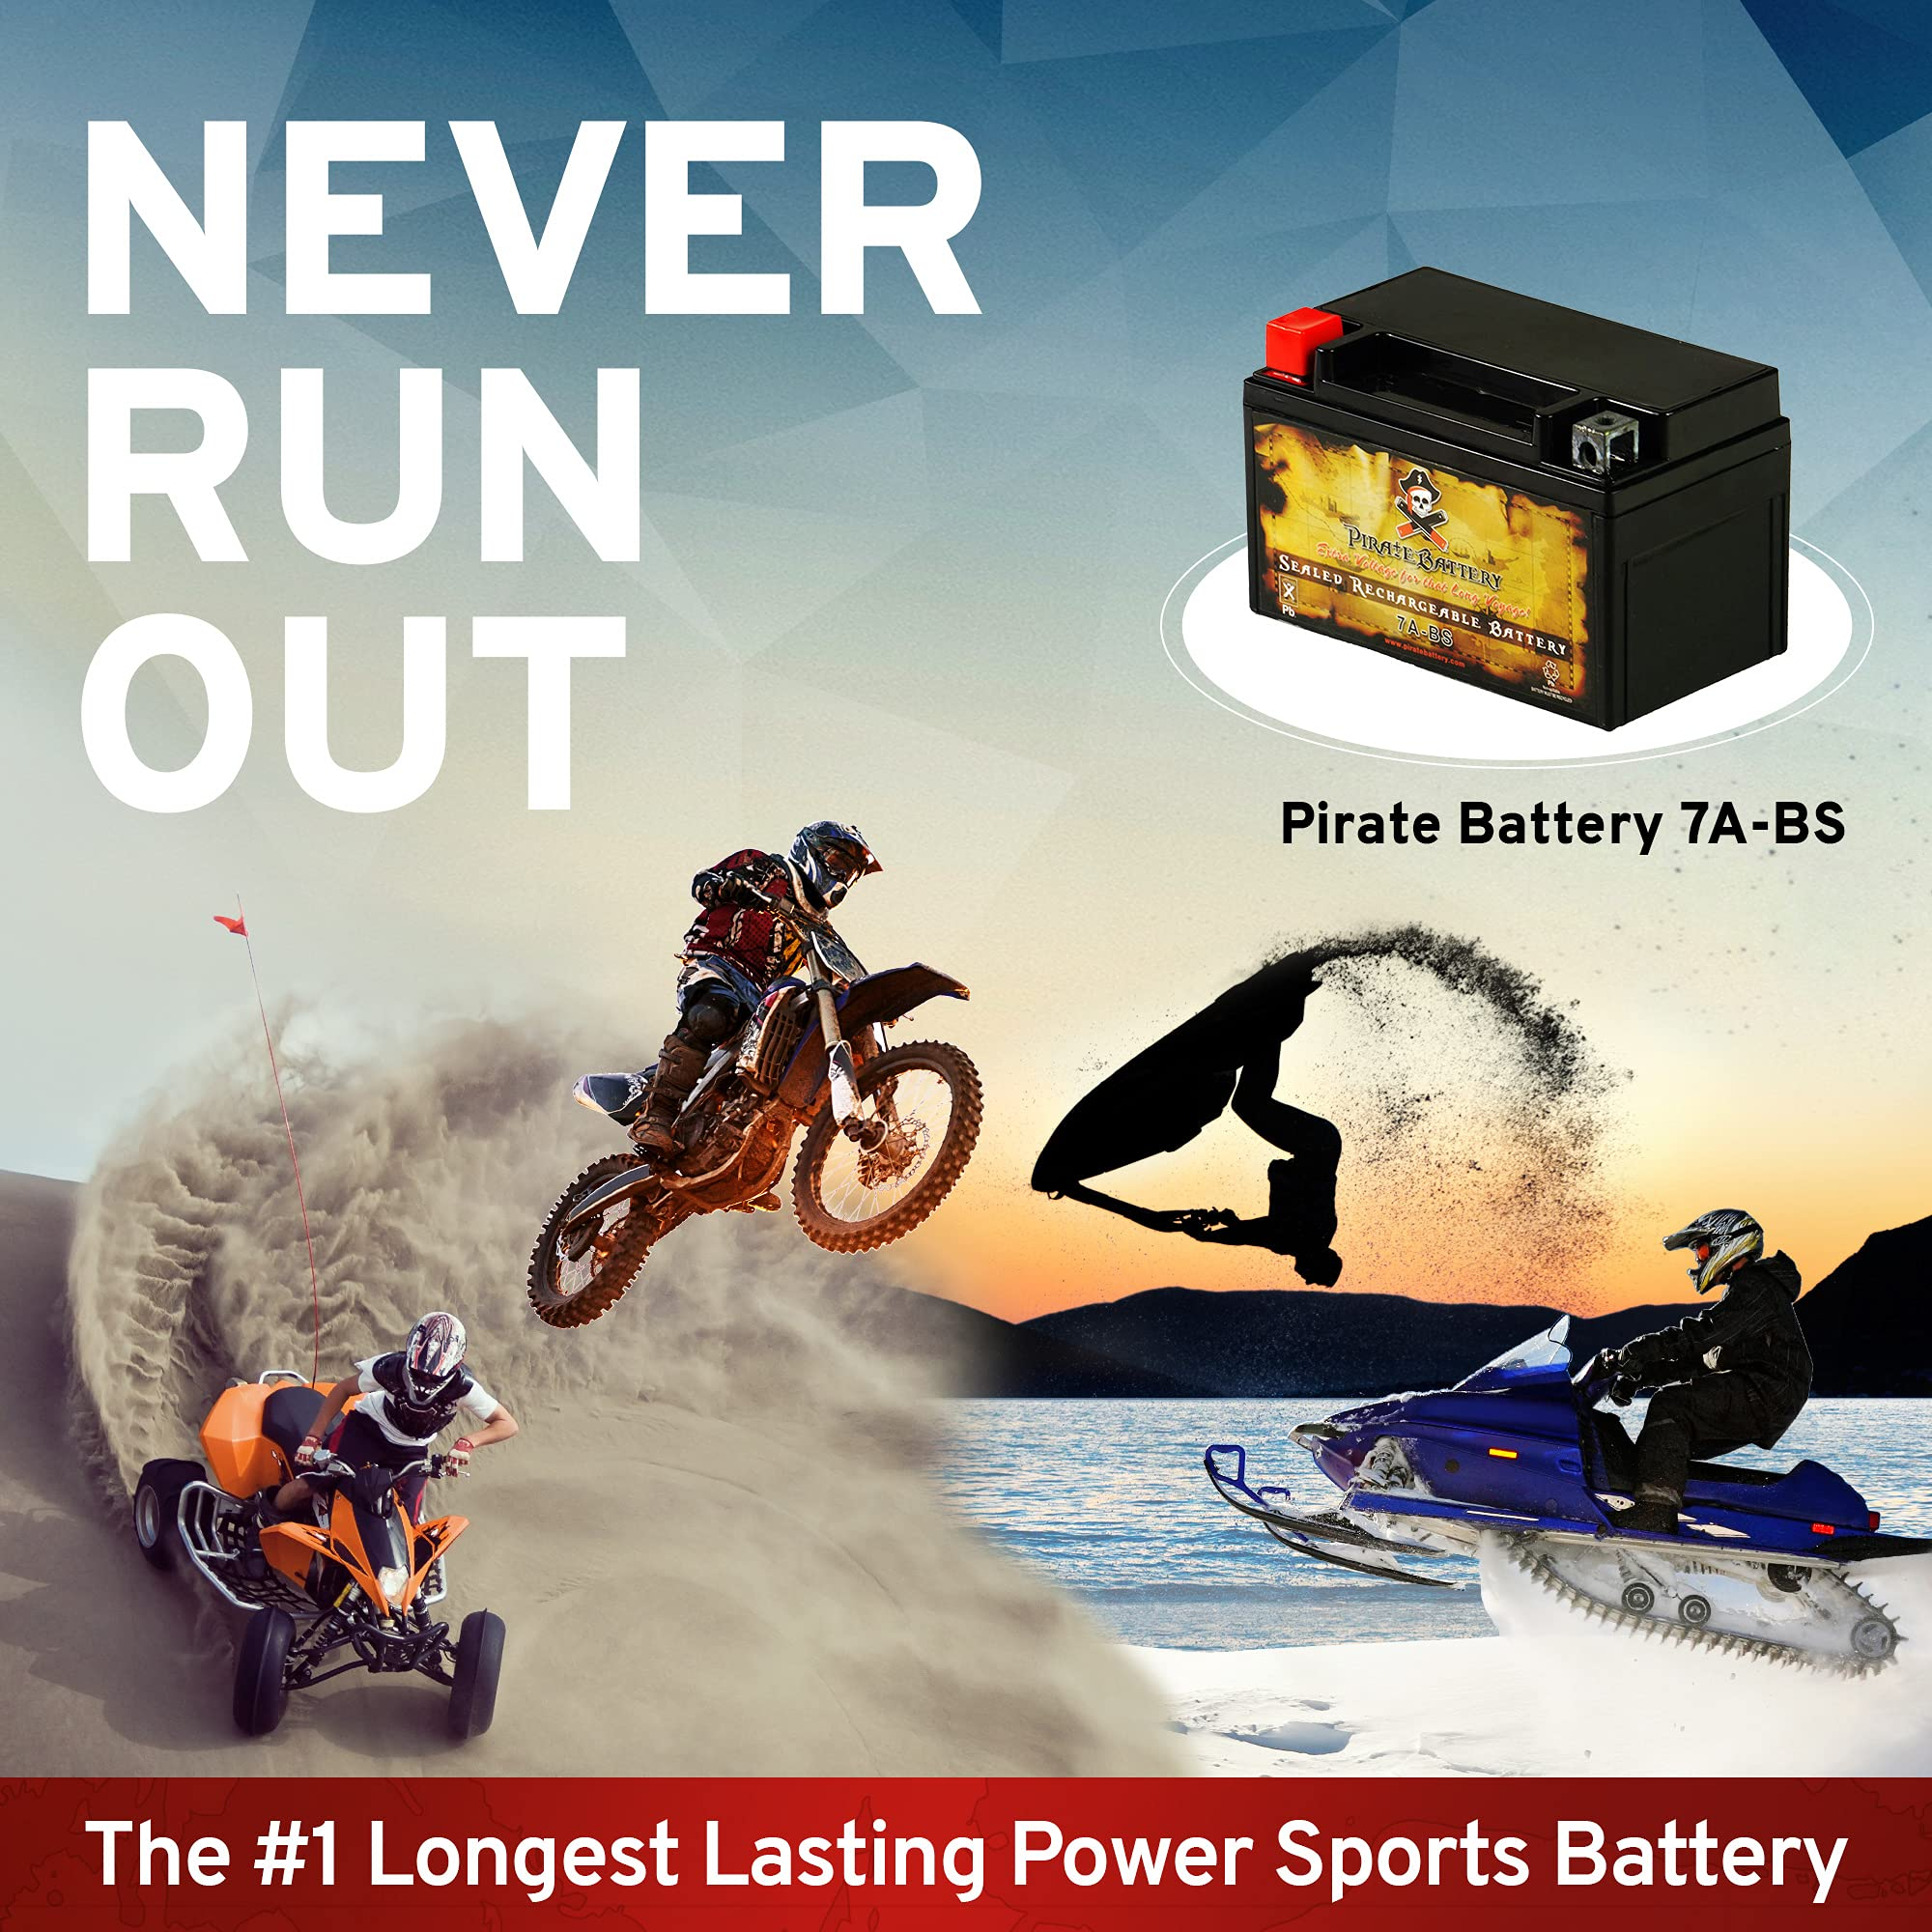 Rechargeable YTX20L-BS Motorcycle Battery - Replaces EBX20L-BS, ETX20L, PTX20L-BS, GTX20L-BS - 270 CCA - Pirate Battery